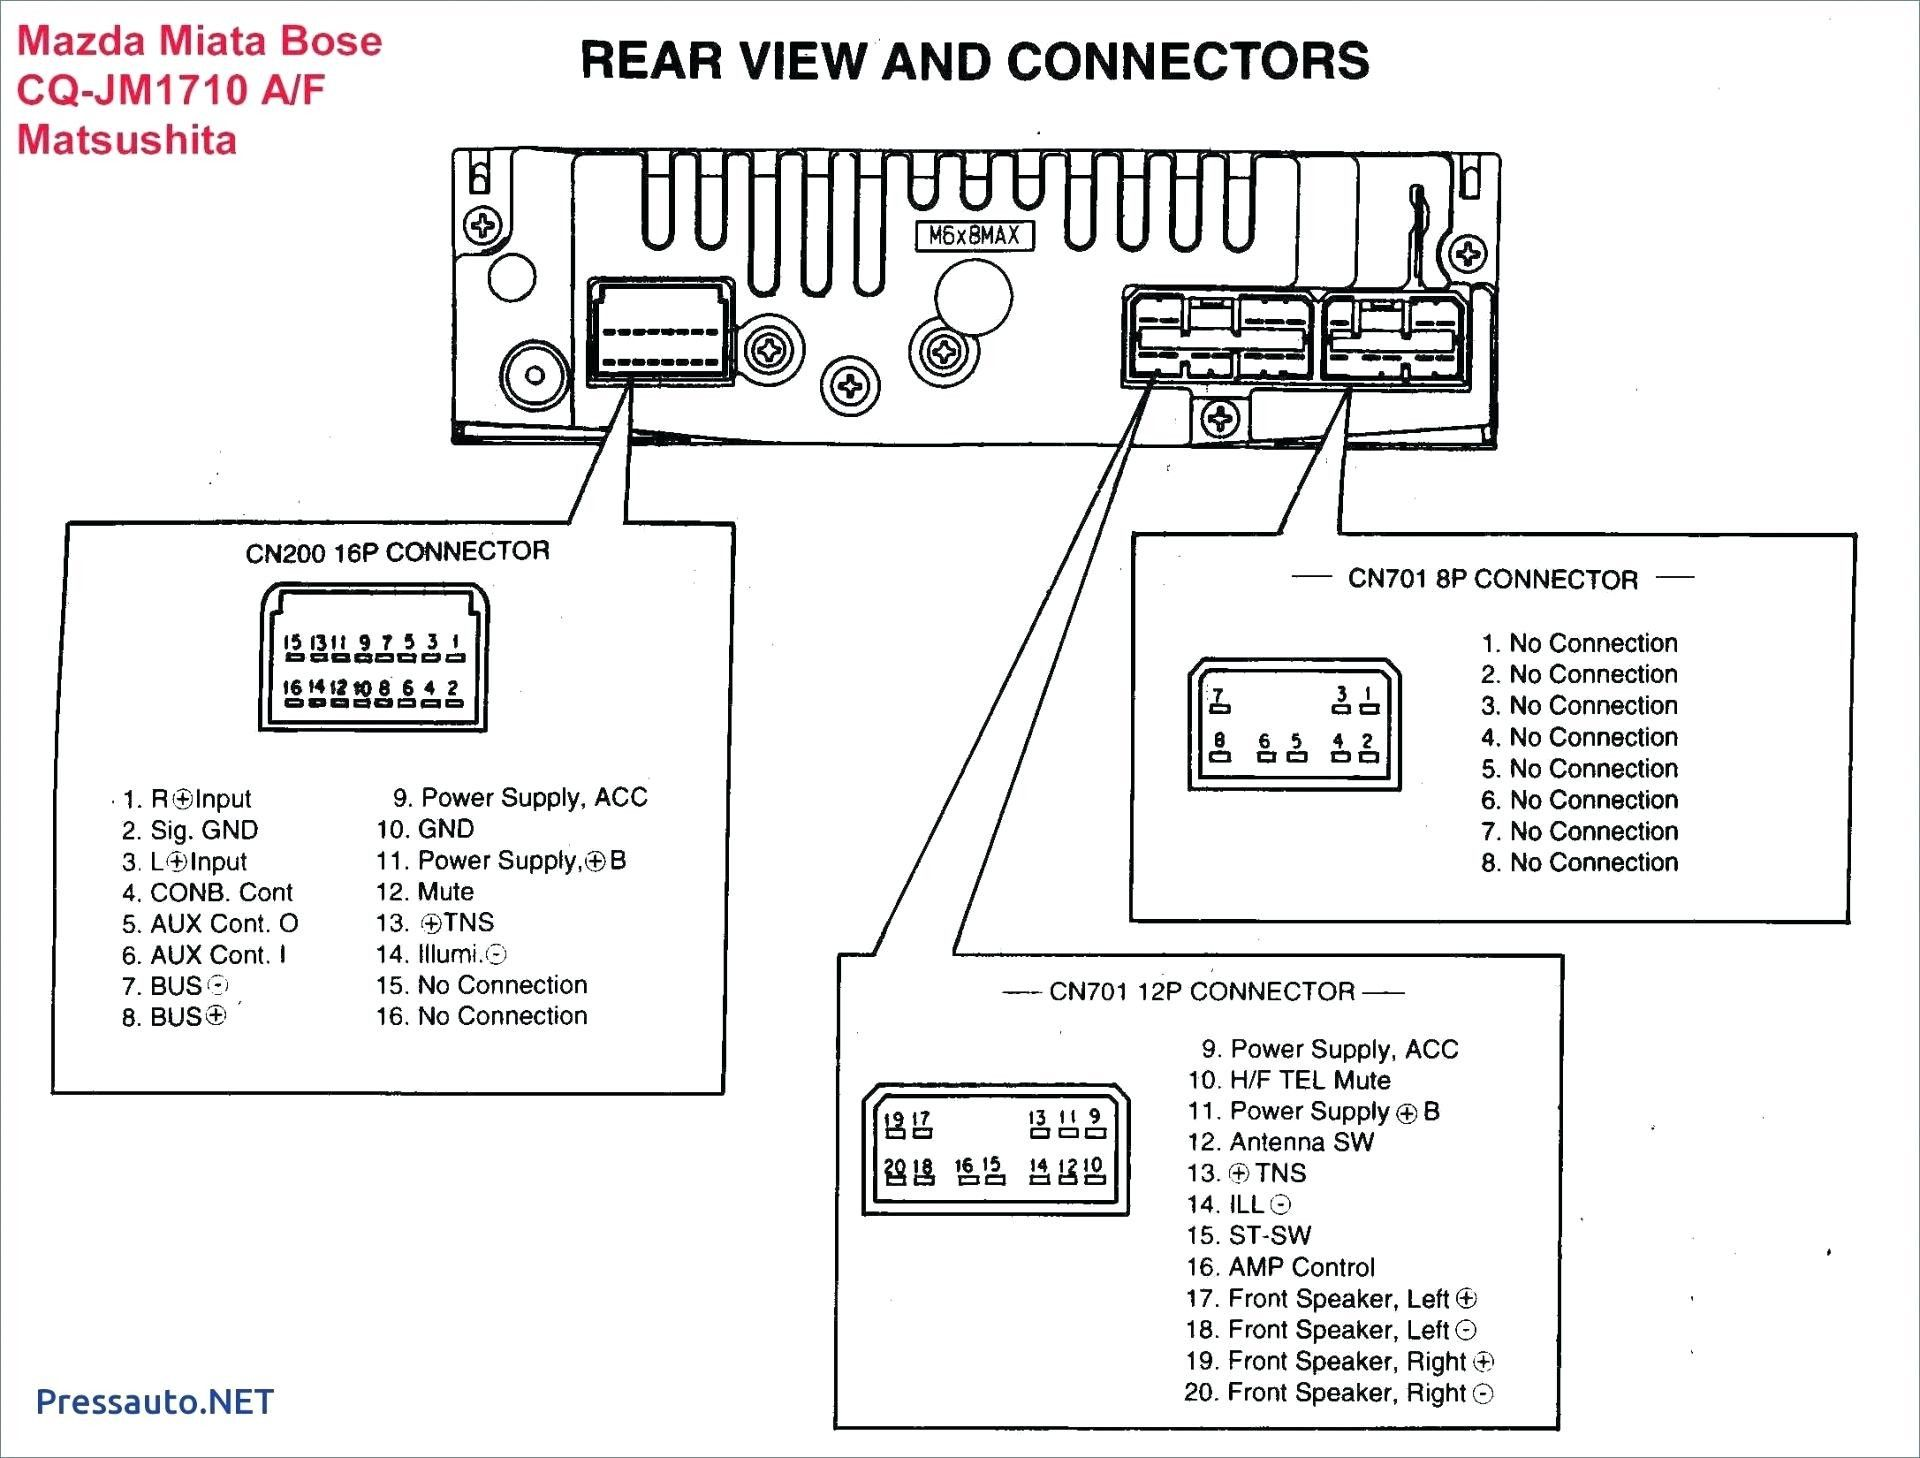 Car Amplifier Connection Diagram In 2021 Sony Car Stereo Pioneer Car Audio Car Stereo Systems